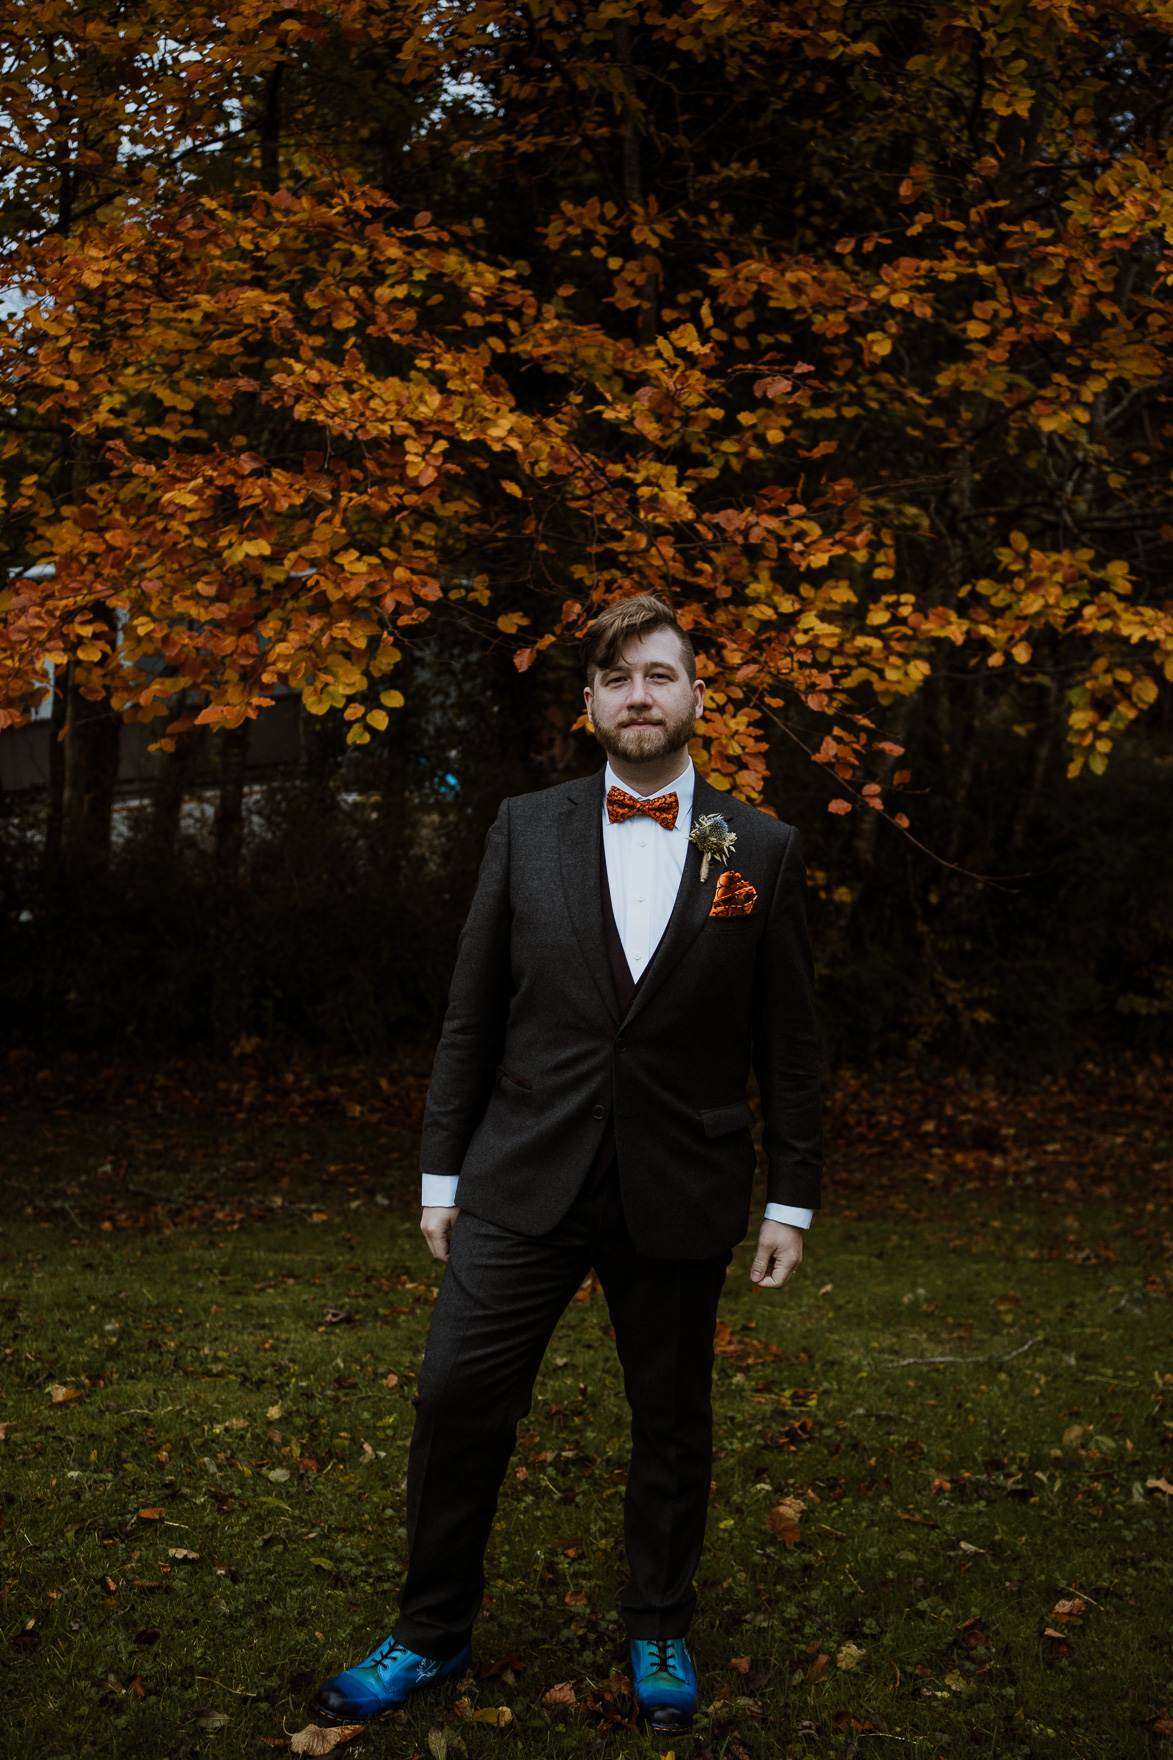 A man wearing a suit and tie standing in a field